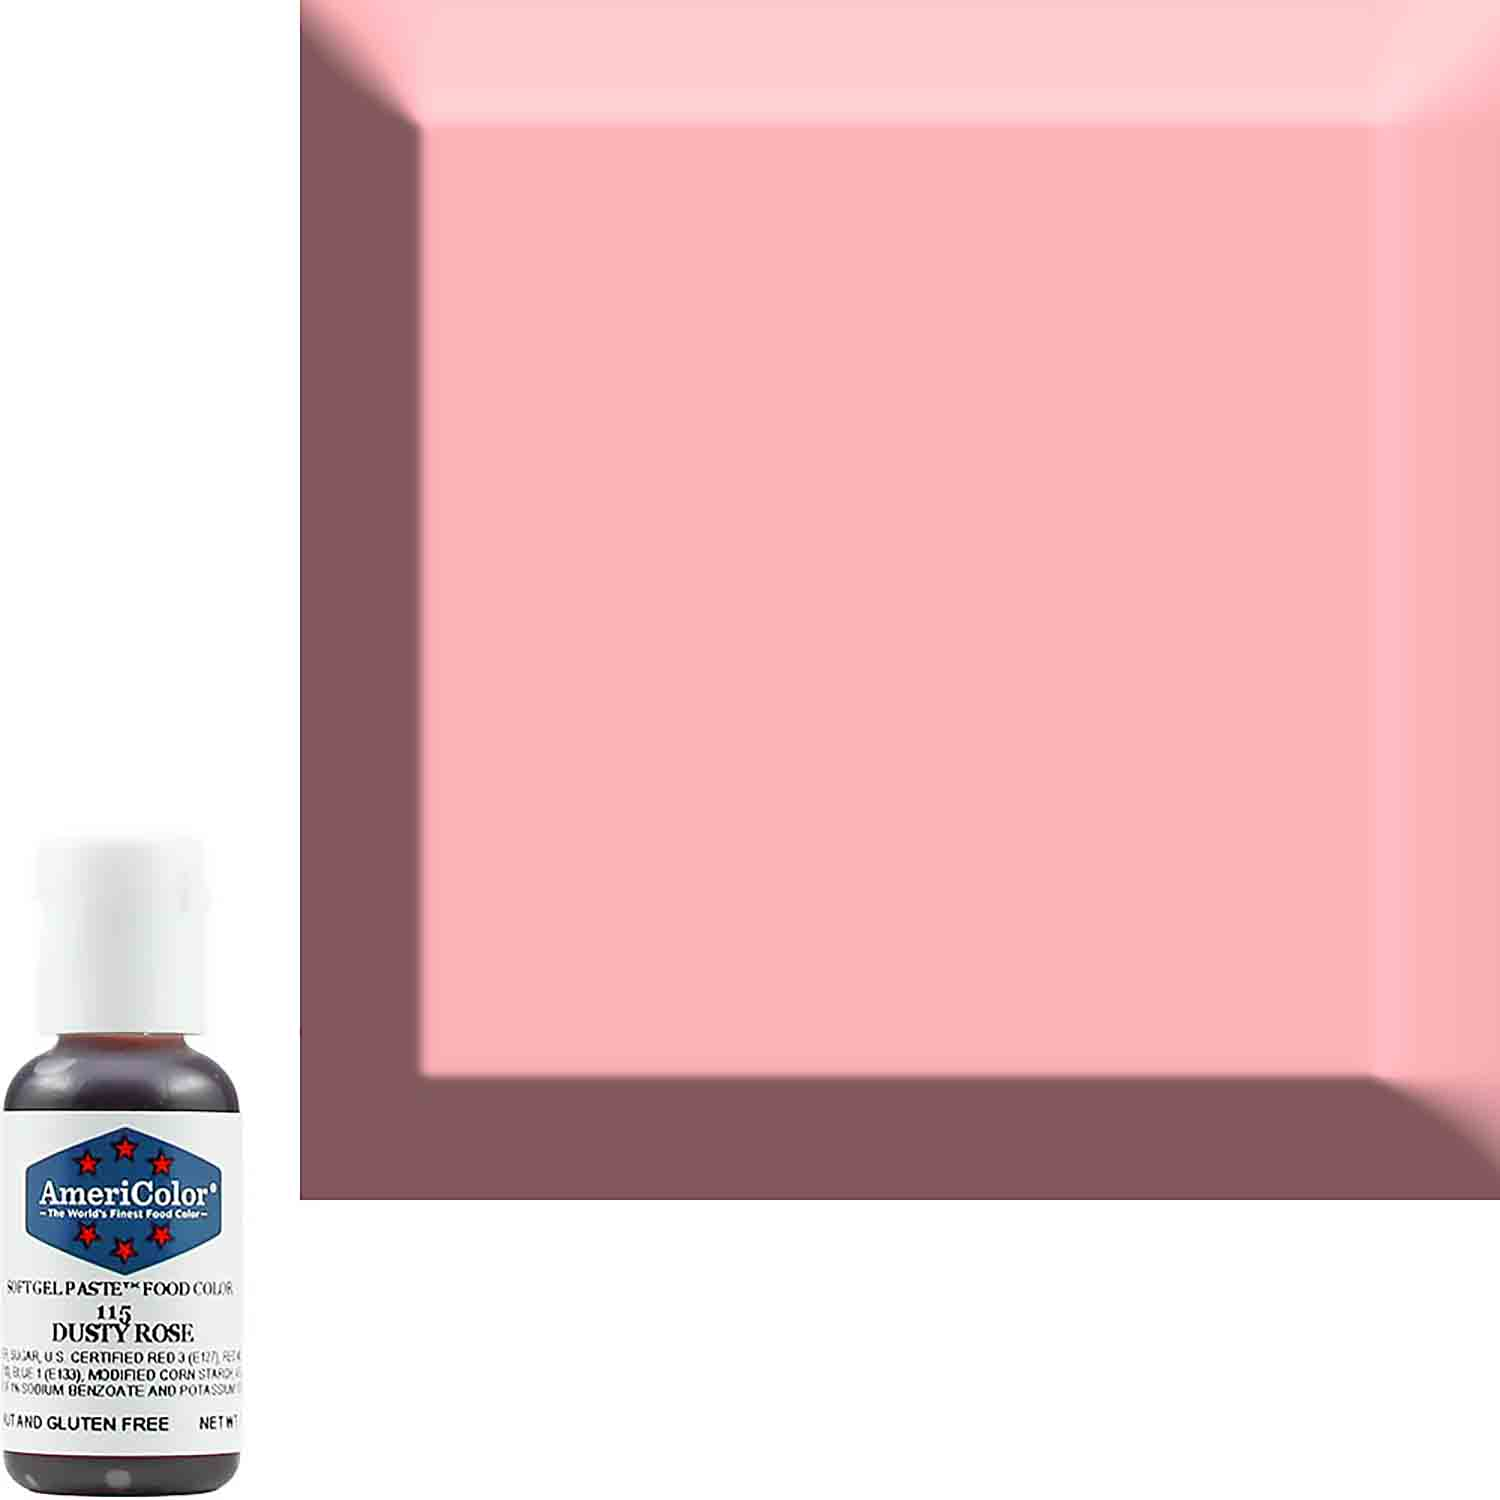 Dusty Rose Americolor® Soft Gel Paste Food Color (Old # 41-8015)